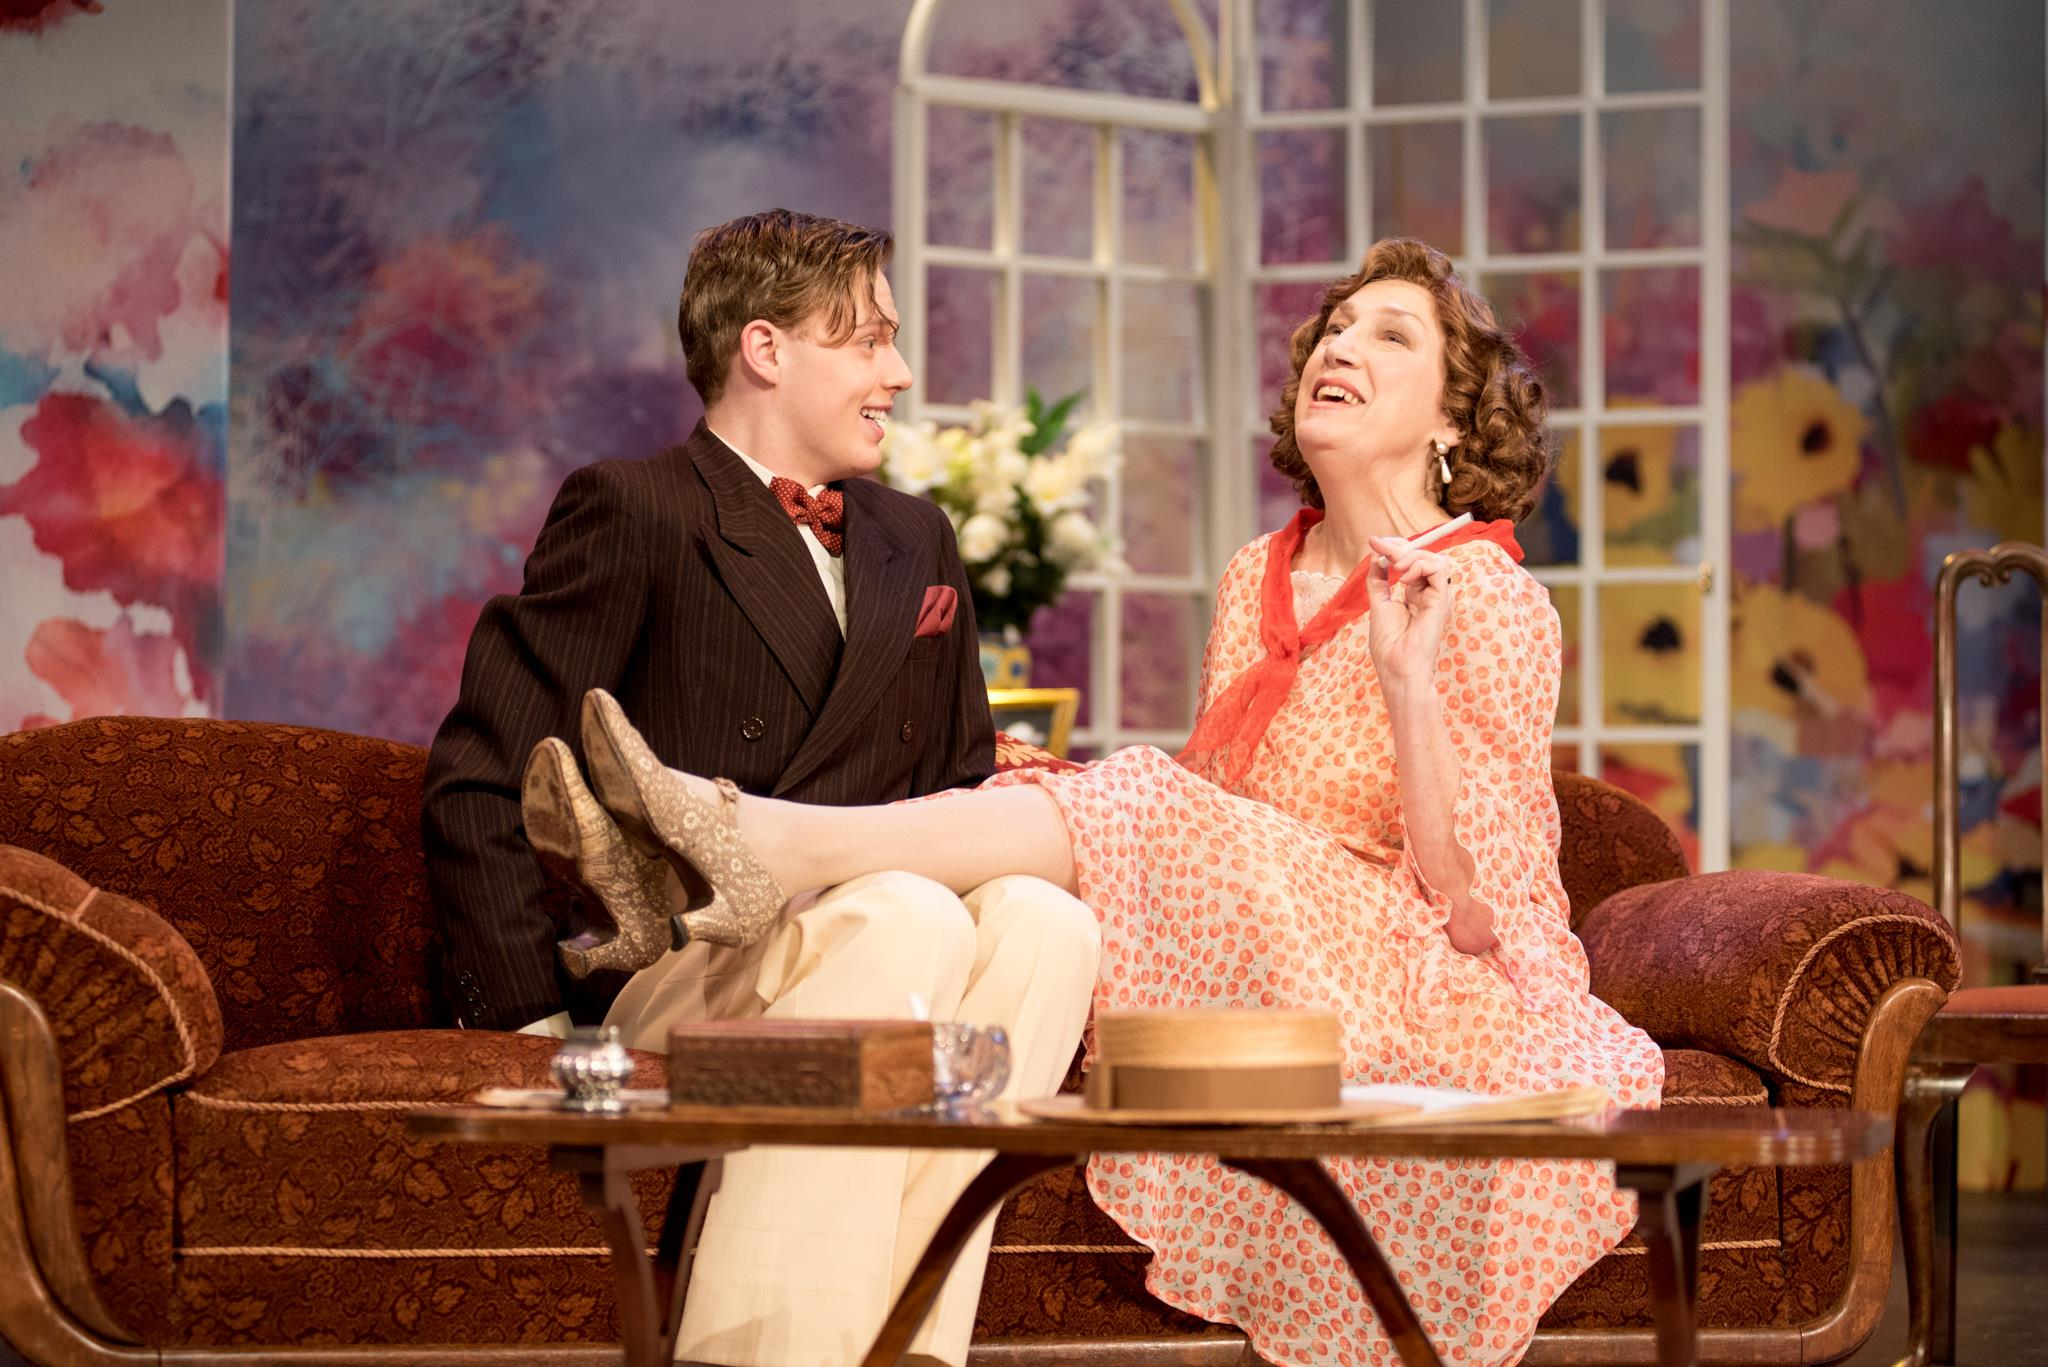 Hay Fever at the Crescent Theatre in Birmingham, Review by Amy Stutz